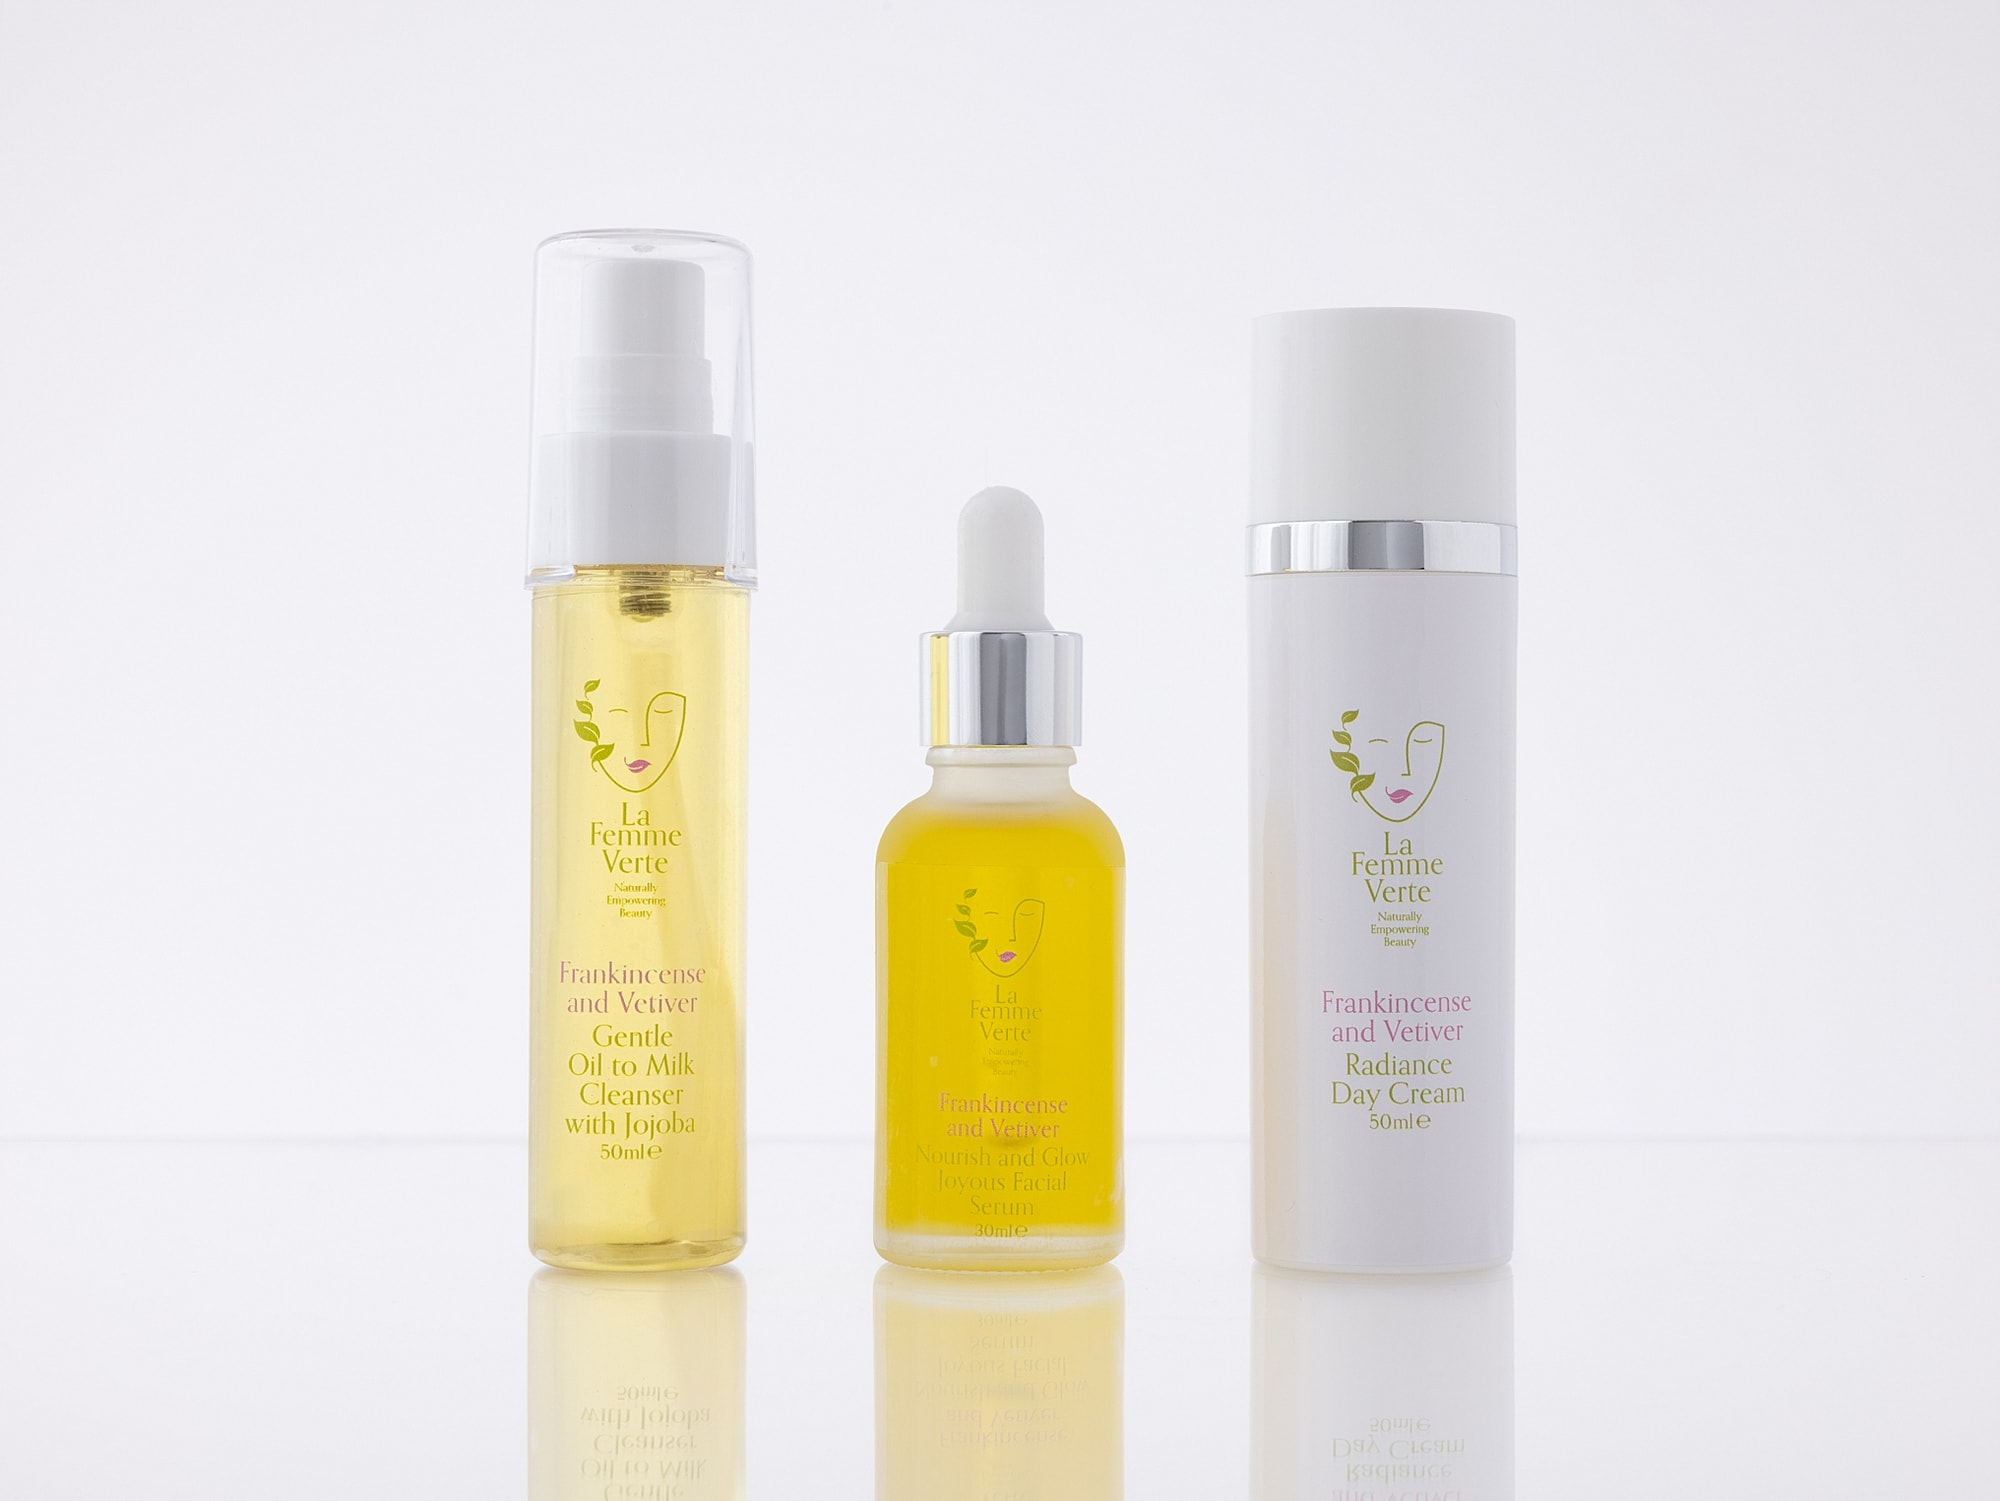 La Femme Verte Skin Care Products on a white background